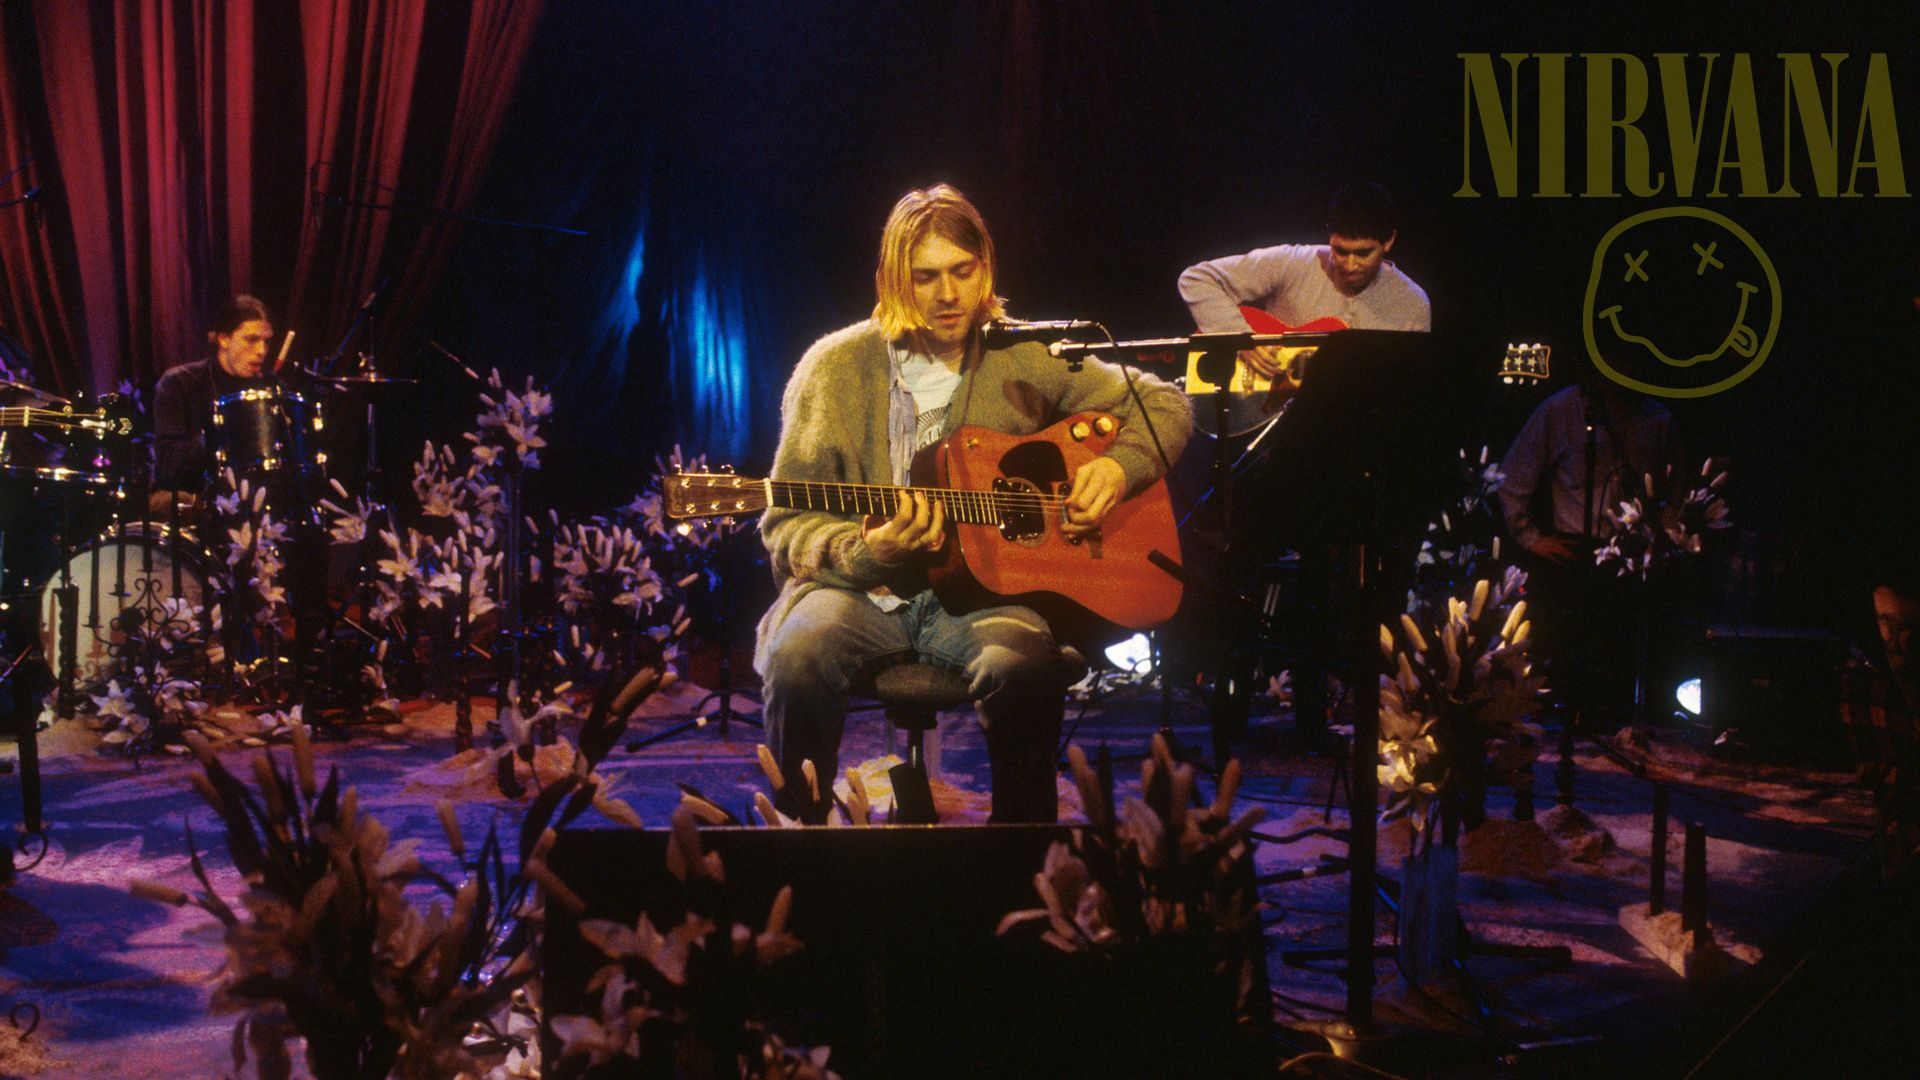 Nirvana Unplugged Wallpaper Unplugged Nirvana